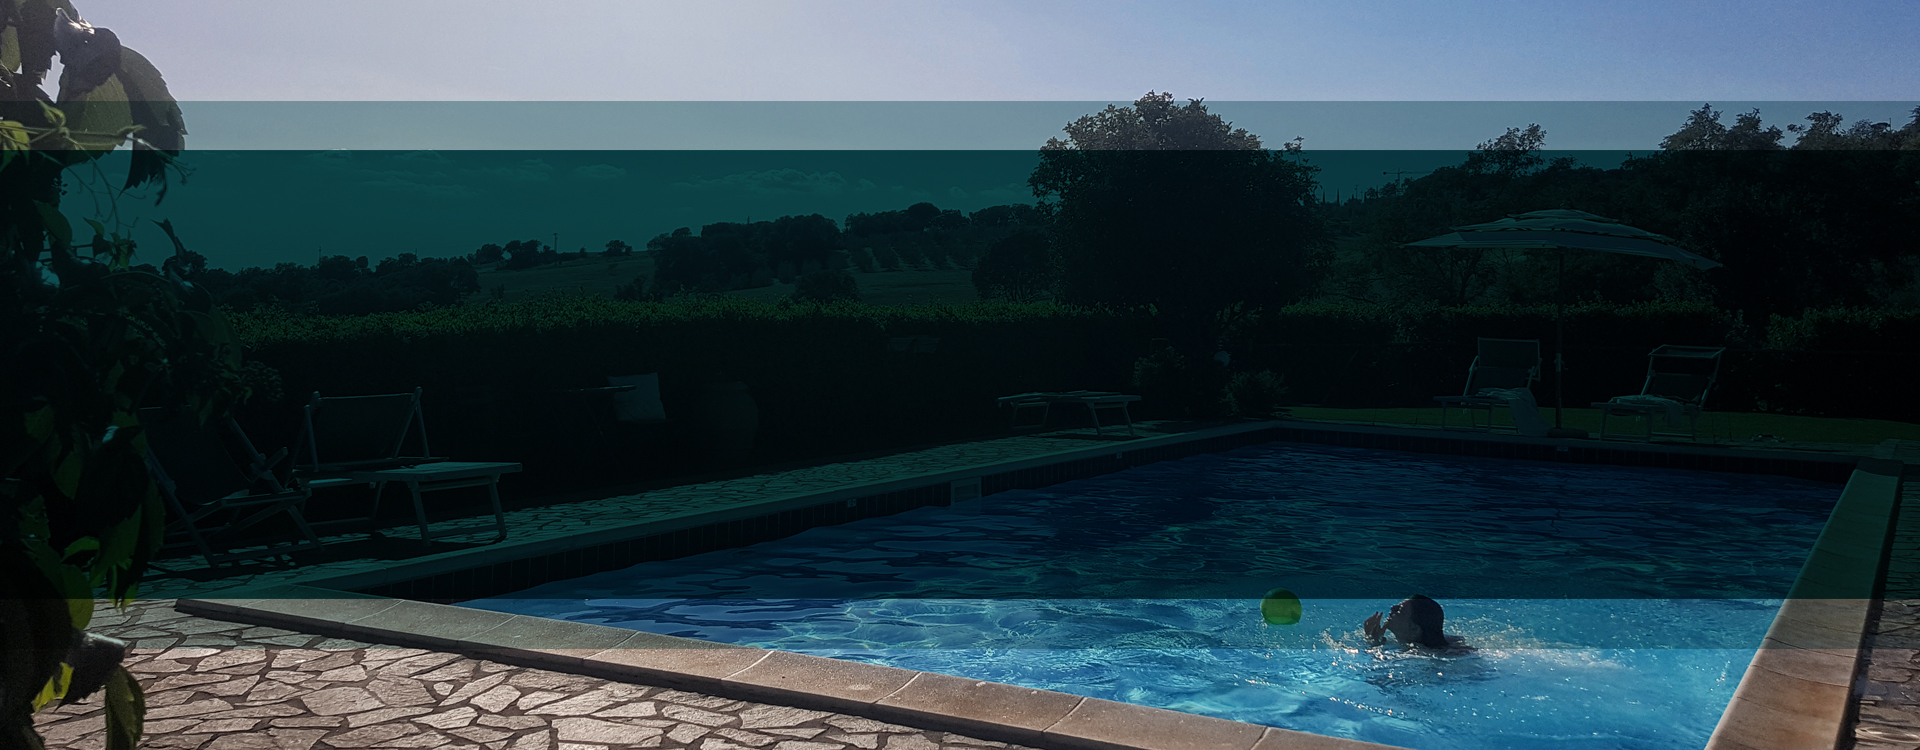 Casa Armini - Swimmingpool